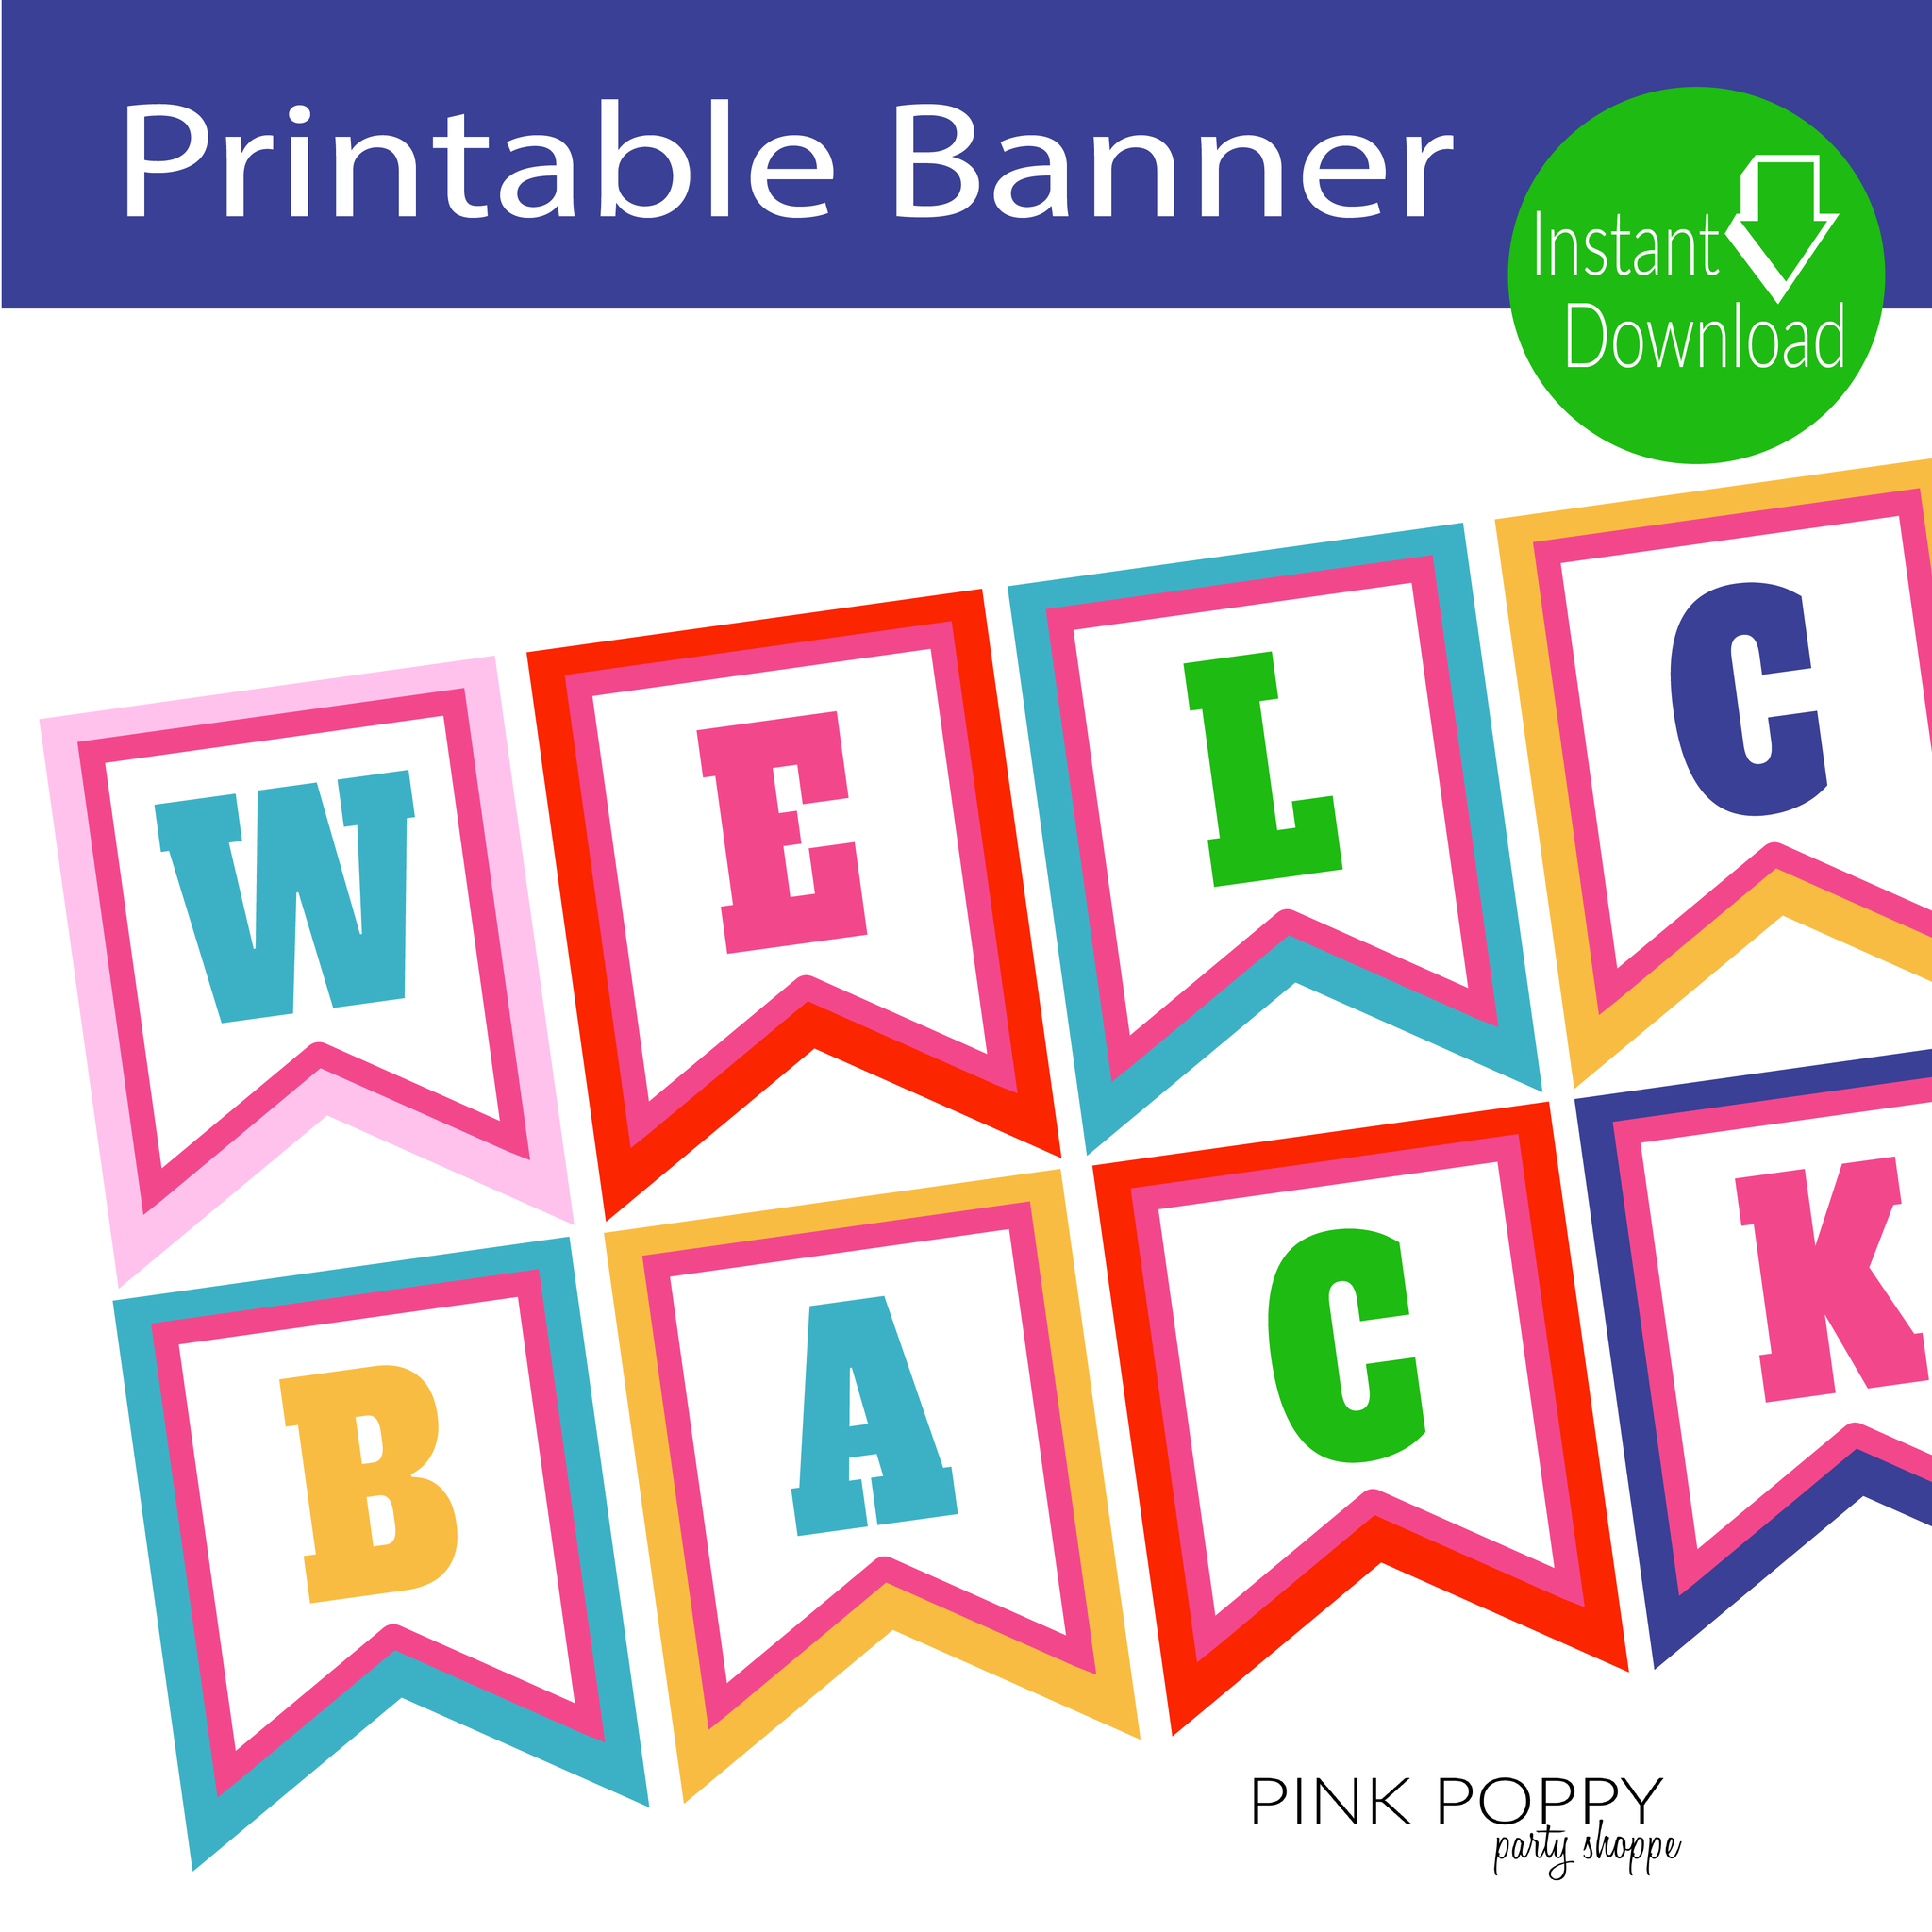 image about Welcome Home Banner Printable named Absolutely free Printables Welcome Back again Banner Shopify Service provider